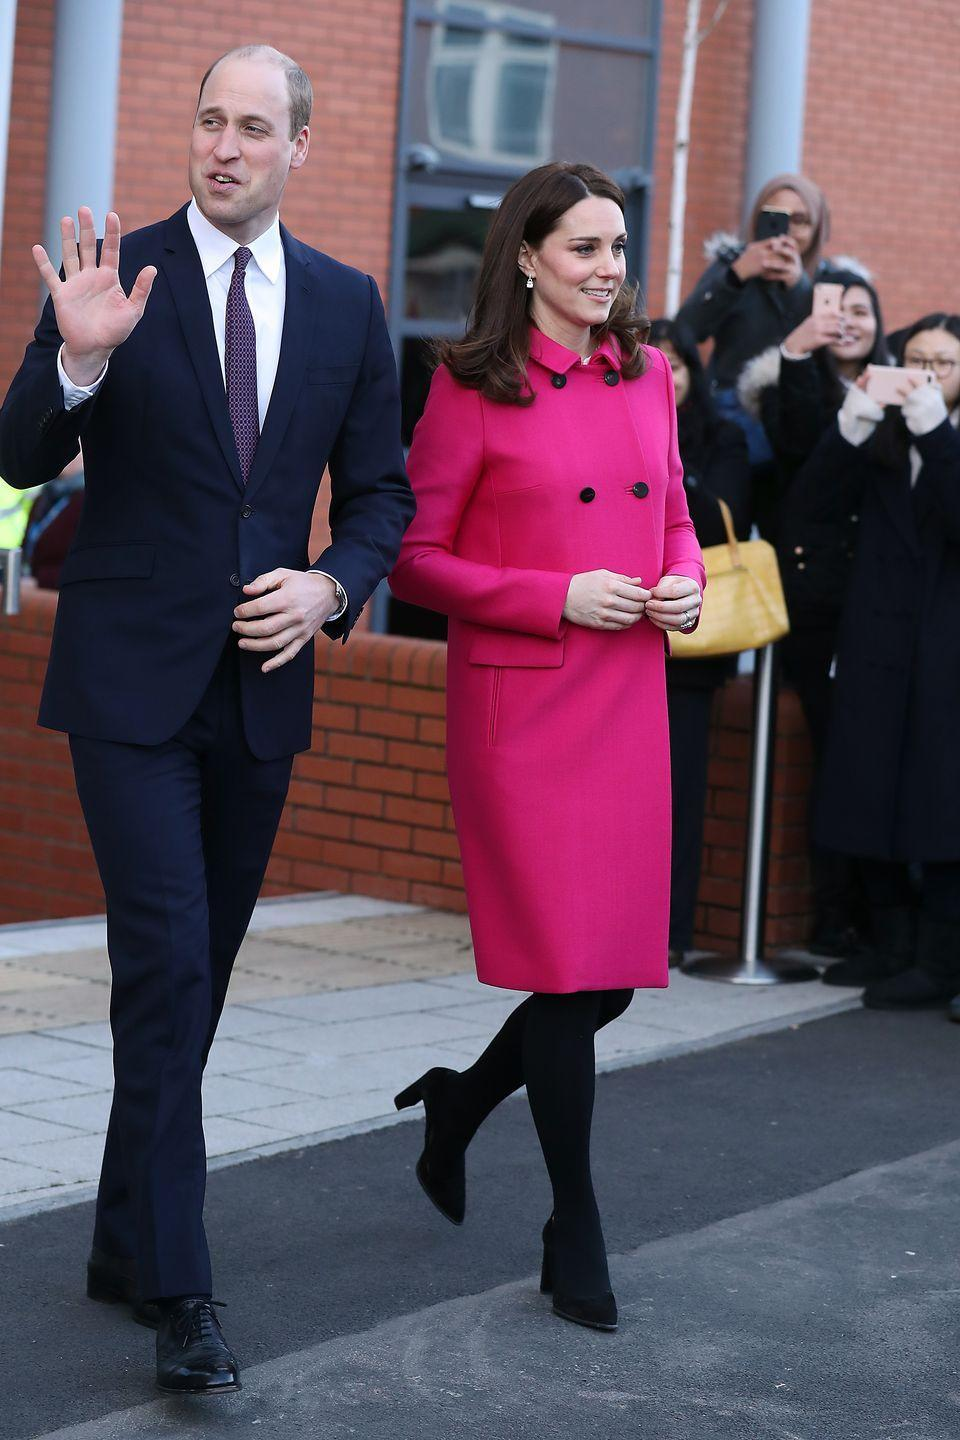 <p>Duckess Kate and Prince William paid a visit to Coventry, England. The Duchess wore a hot pink coat by Mulberry with a black clutch by the same brand with Tod's heels. </p>